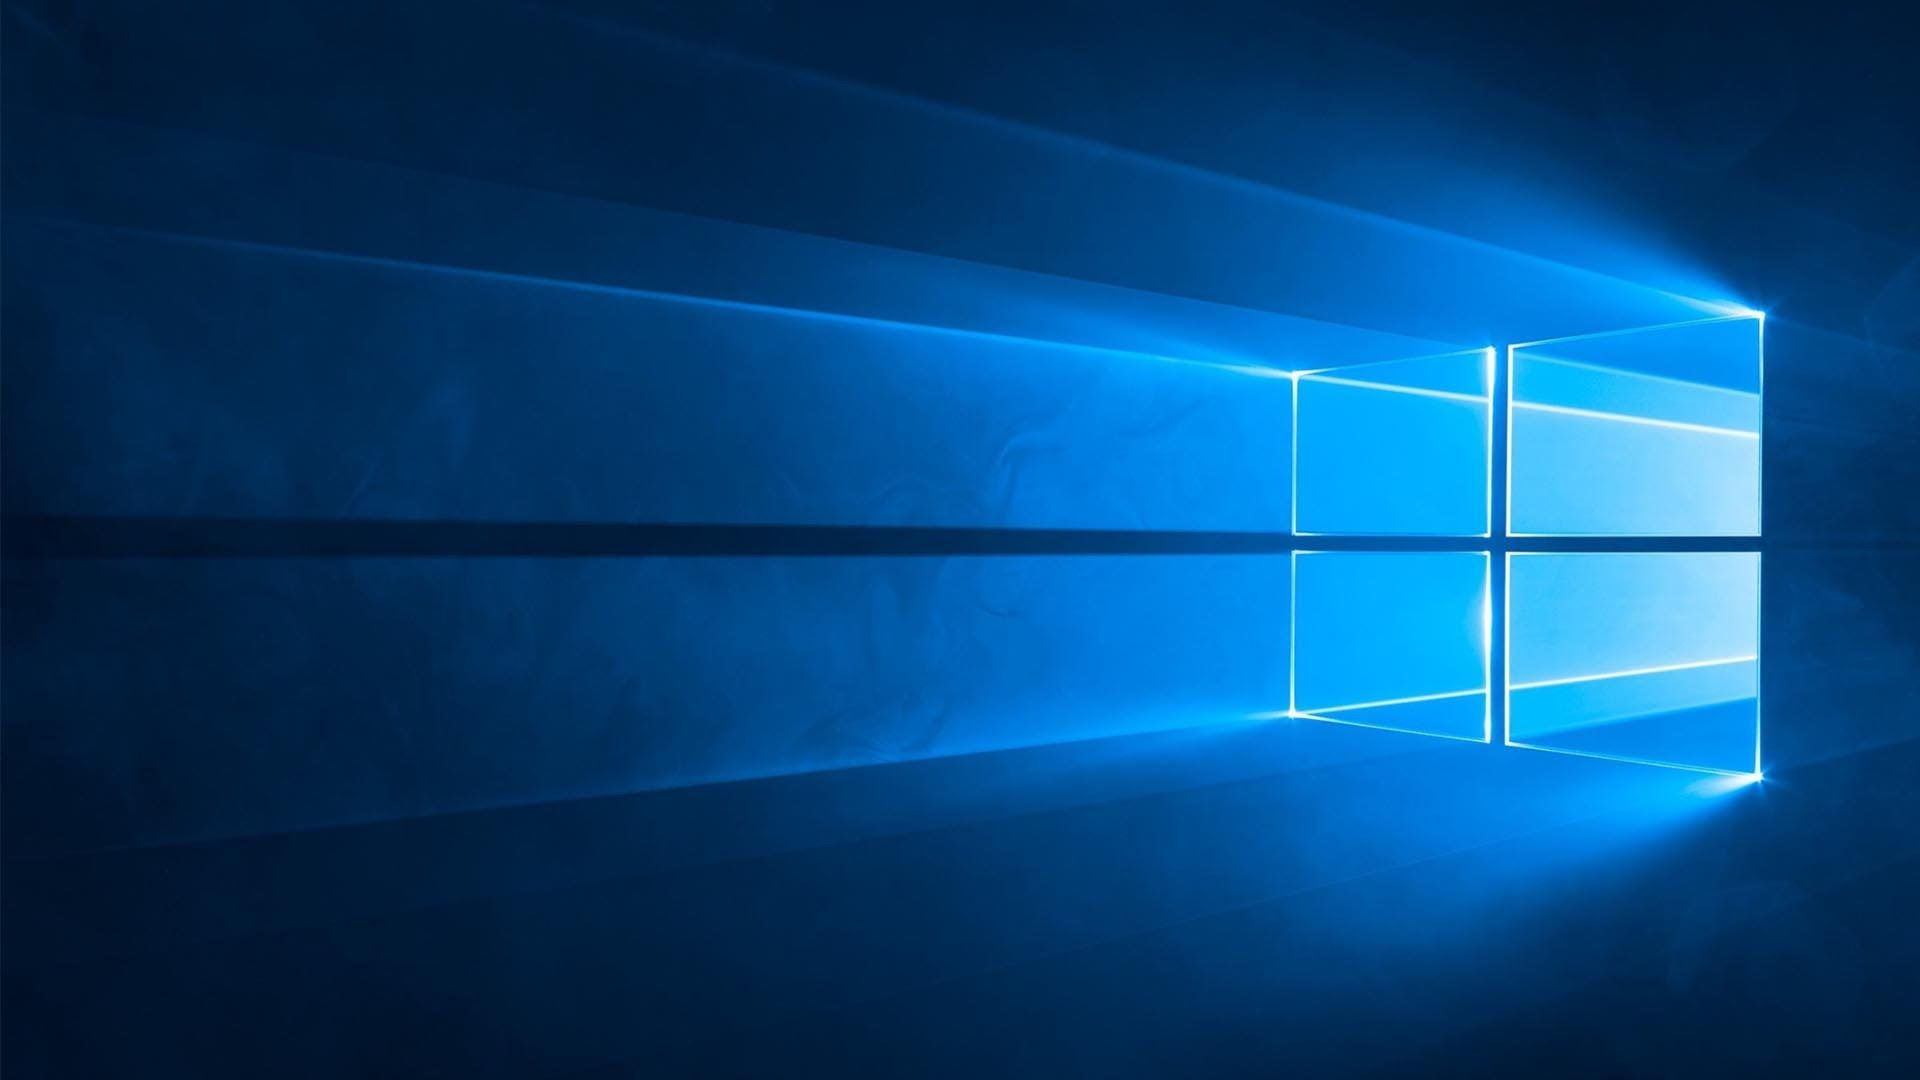 notificaciones de Windows 10